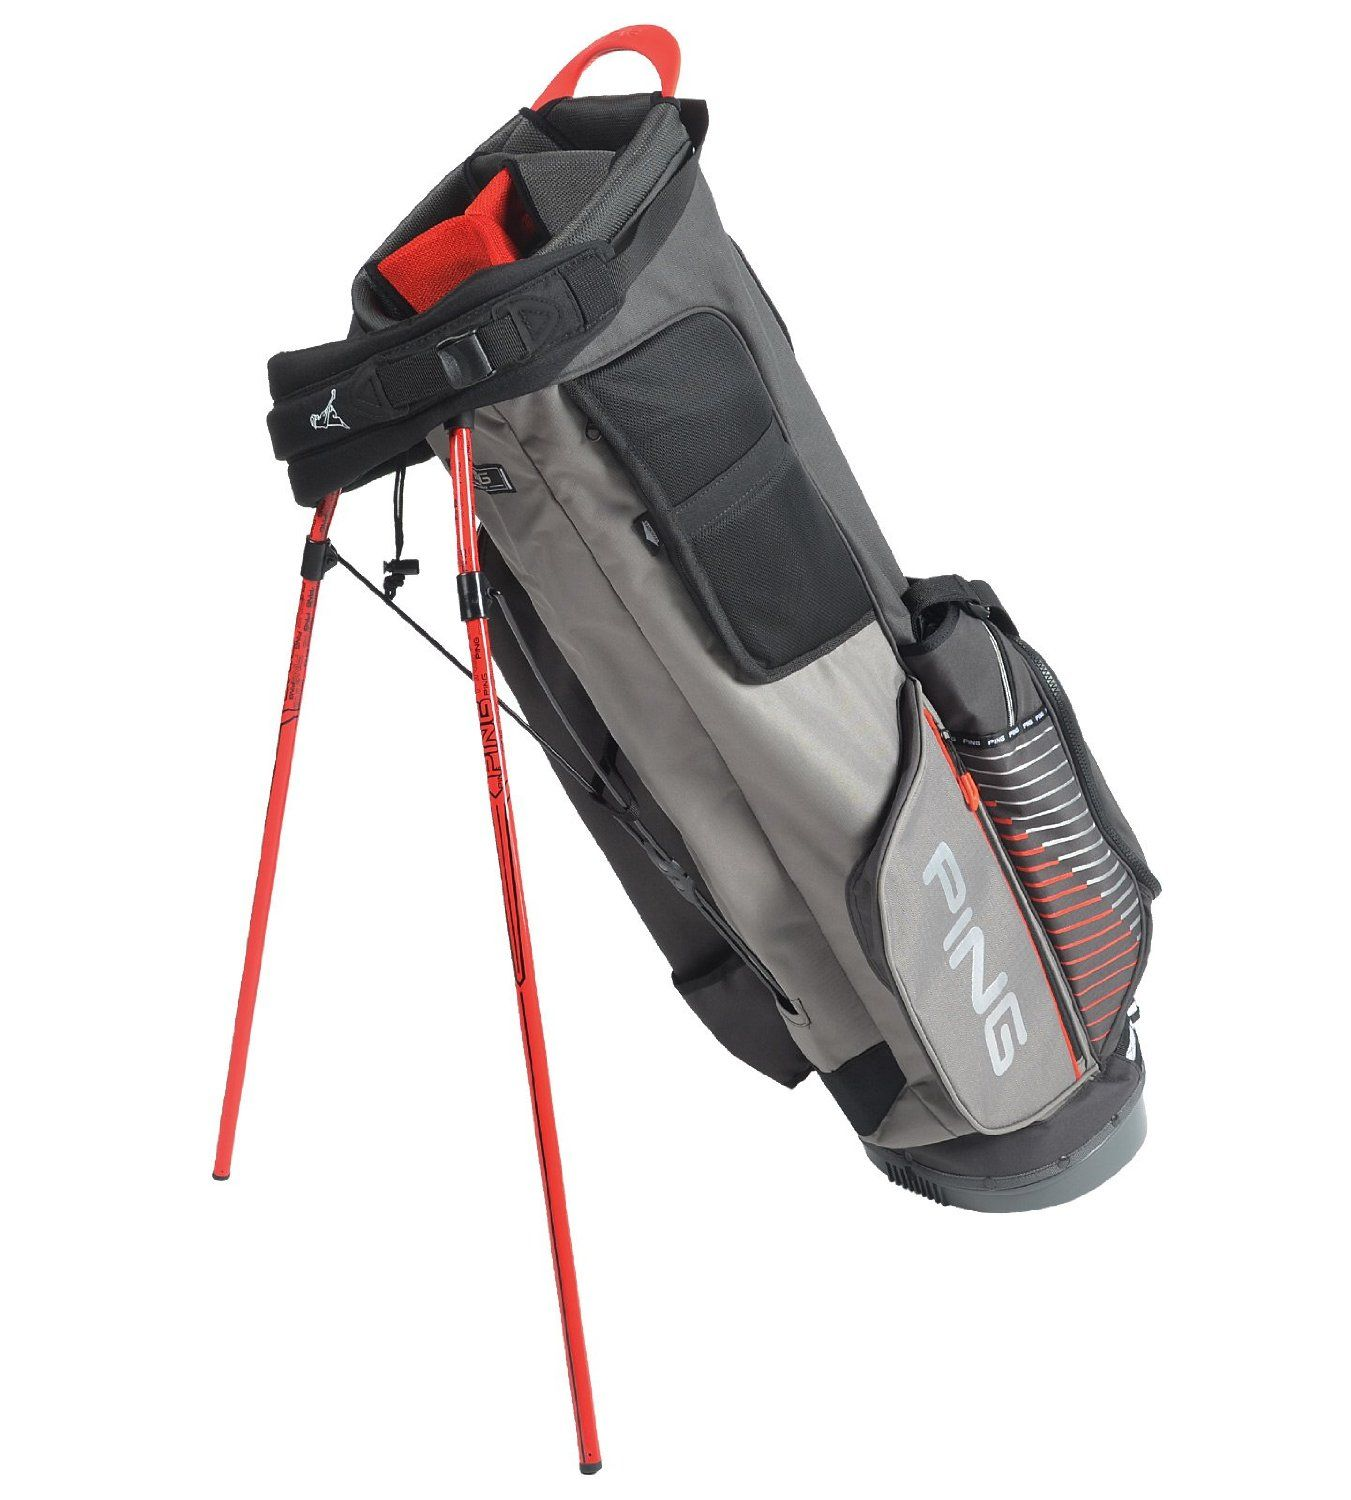 Utilizing easy adjusting sliding shoulder straps these mens 4 series II golf  stand bags by Ping also feature a rain hood and umbrella holder 0ab5411da2d06